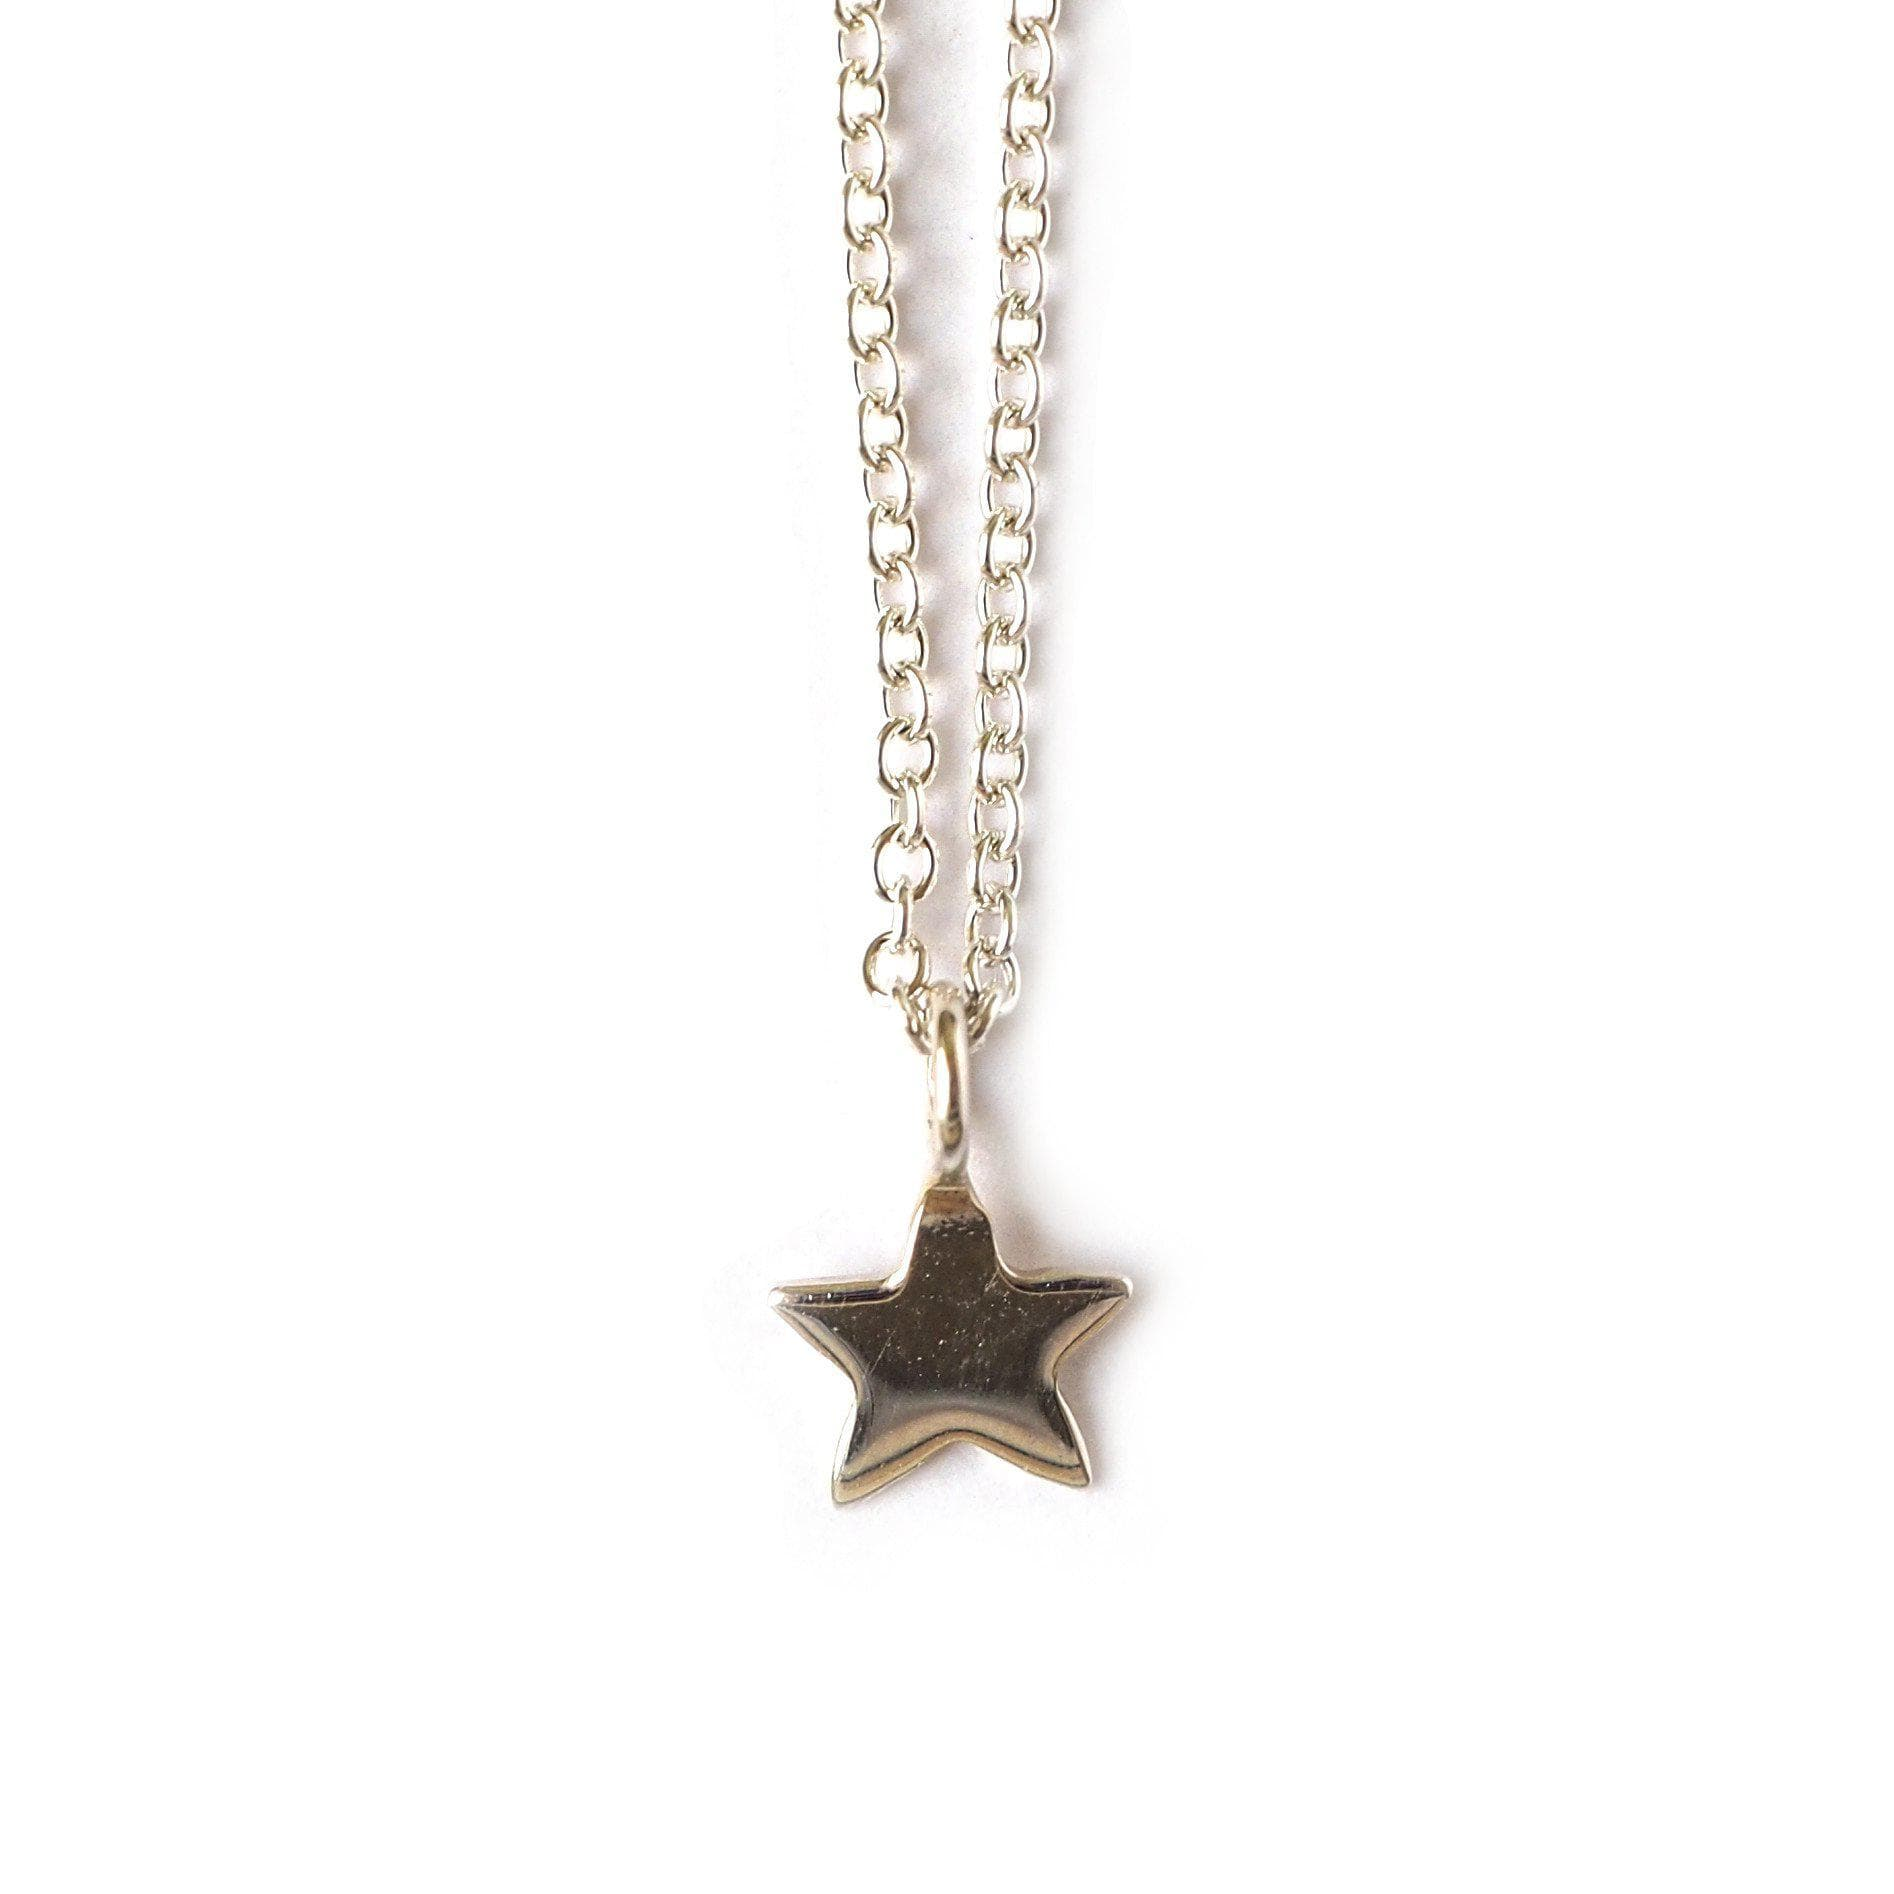 and tiny buy necklace dainty vila lovely colors jewelry twinkle products gold cute available star silver pendant rosa